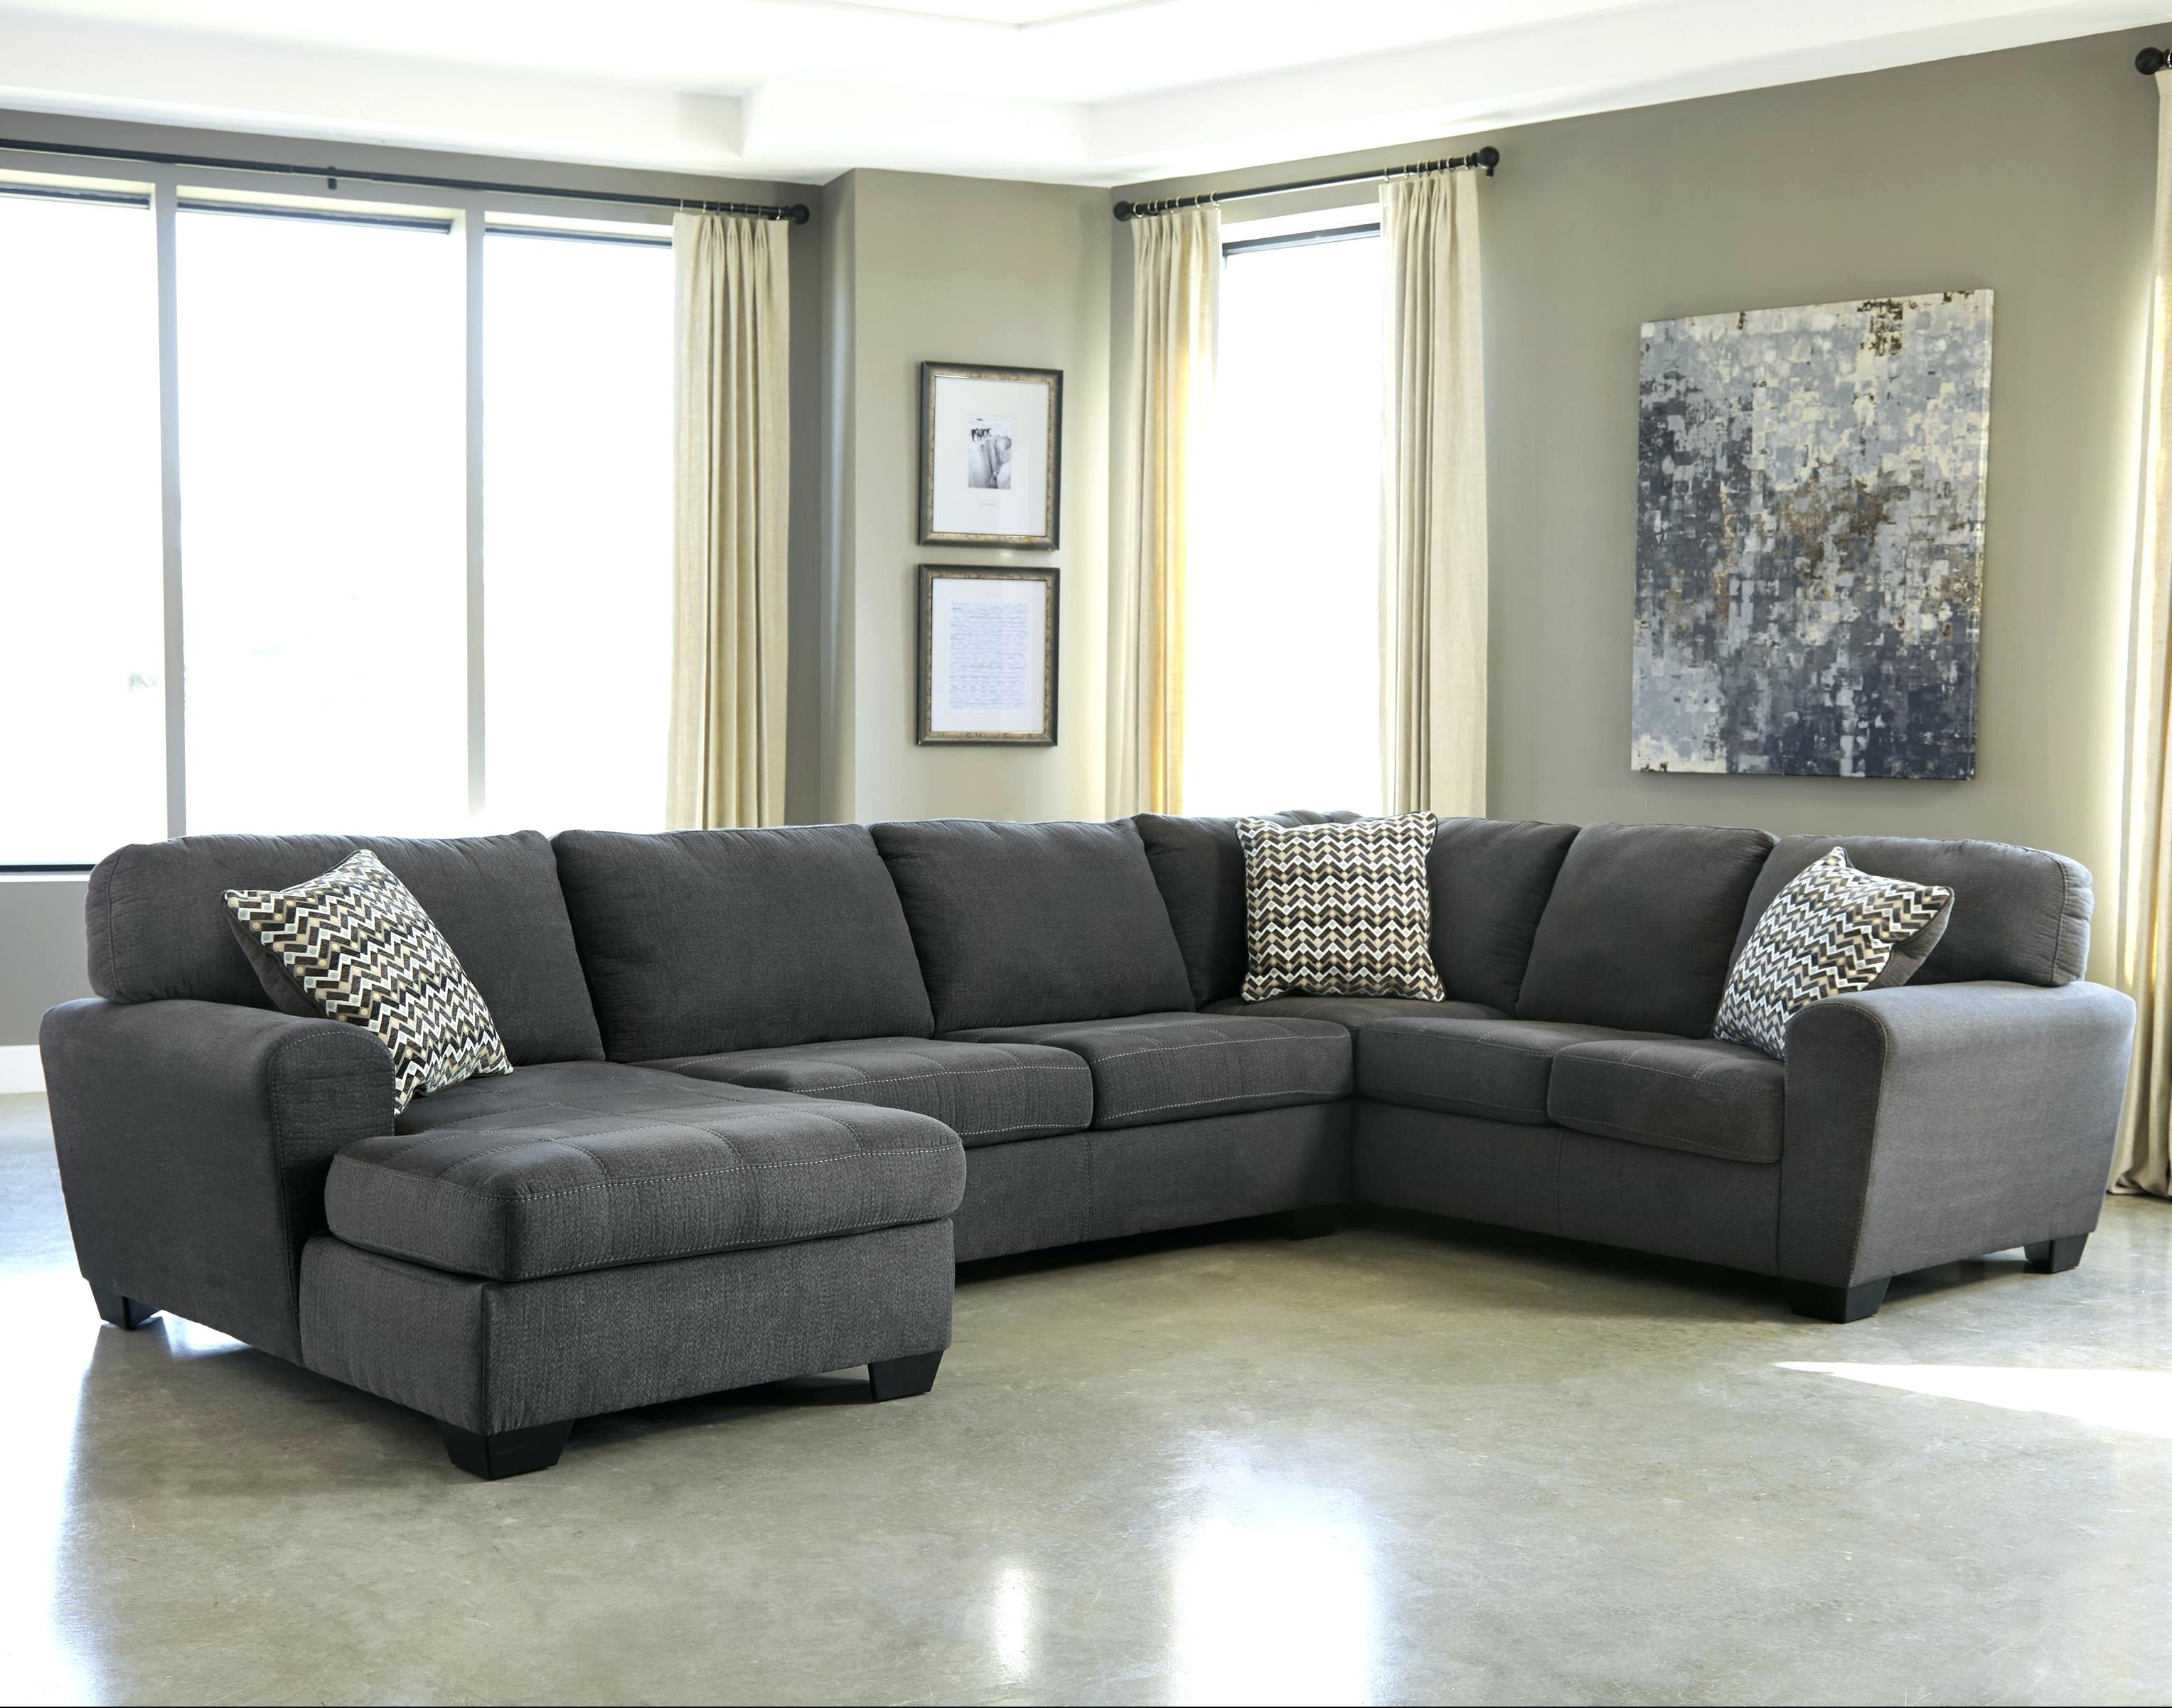 3 Piece Sectional Haven Blue Steel 3 Piece Sectional 3 Pc Reclining for Haven Blue Steel 3 Piece Sectionals (Image 1 of 30)